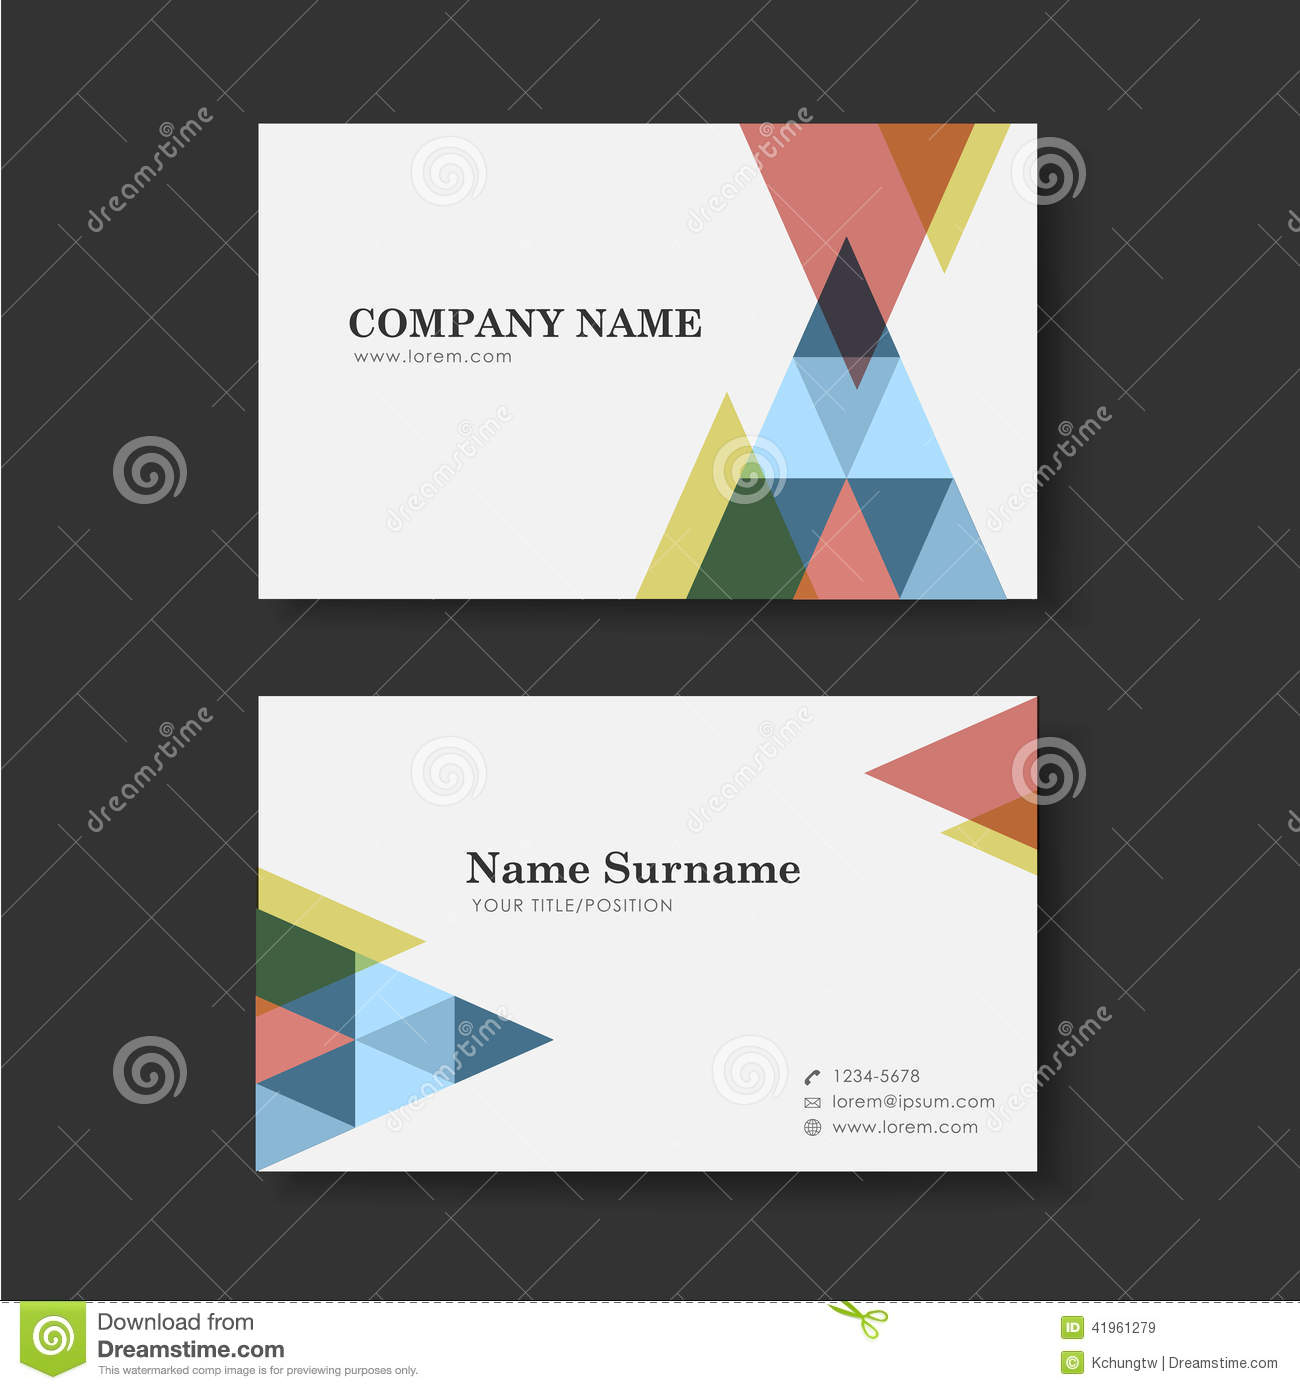 Premium business card template designs zesloka accmission Gallery